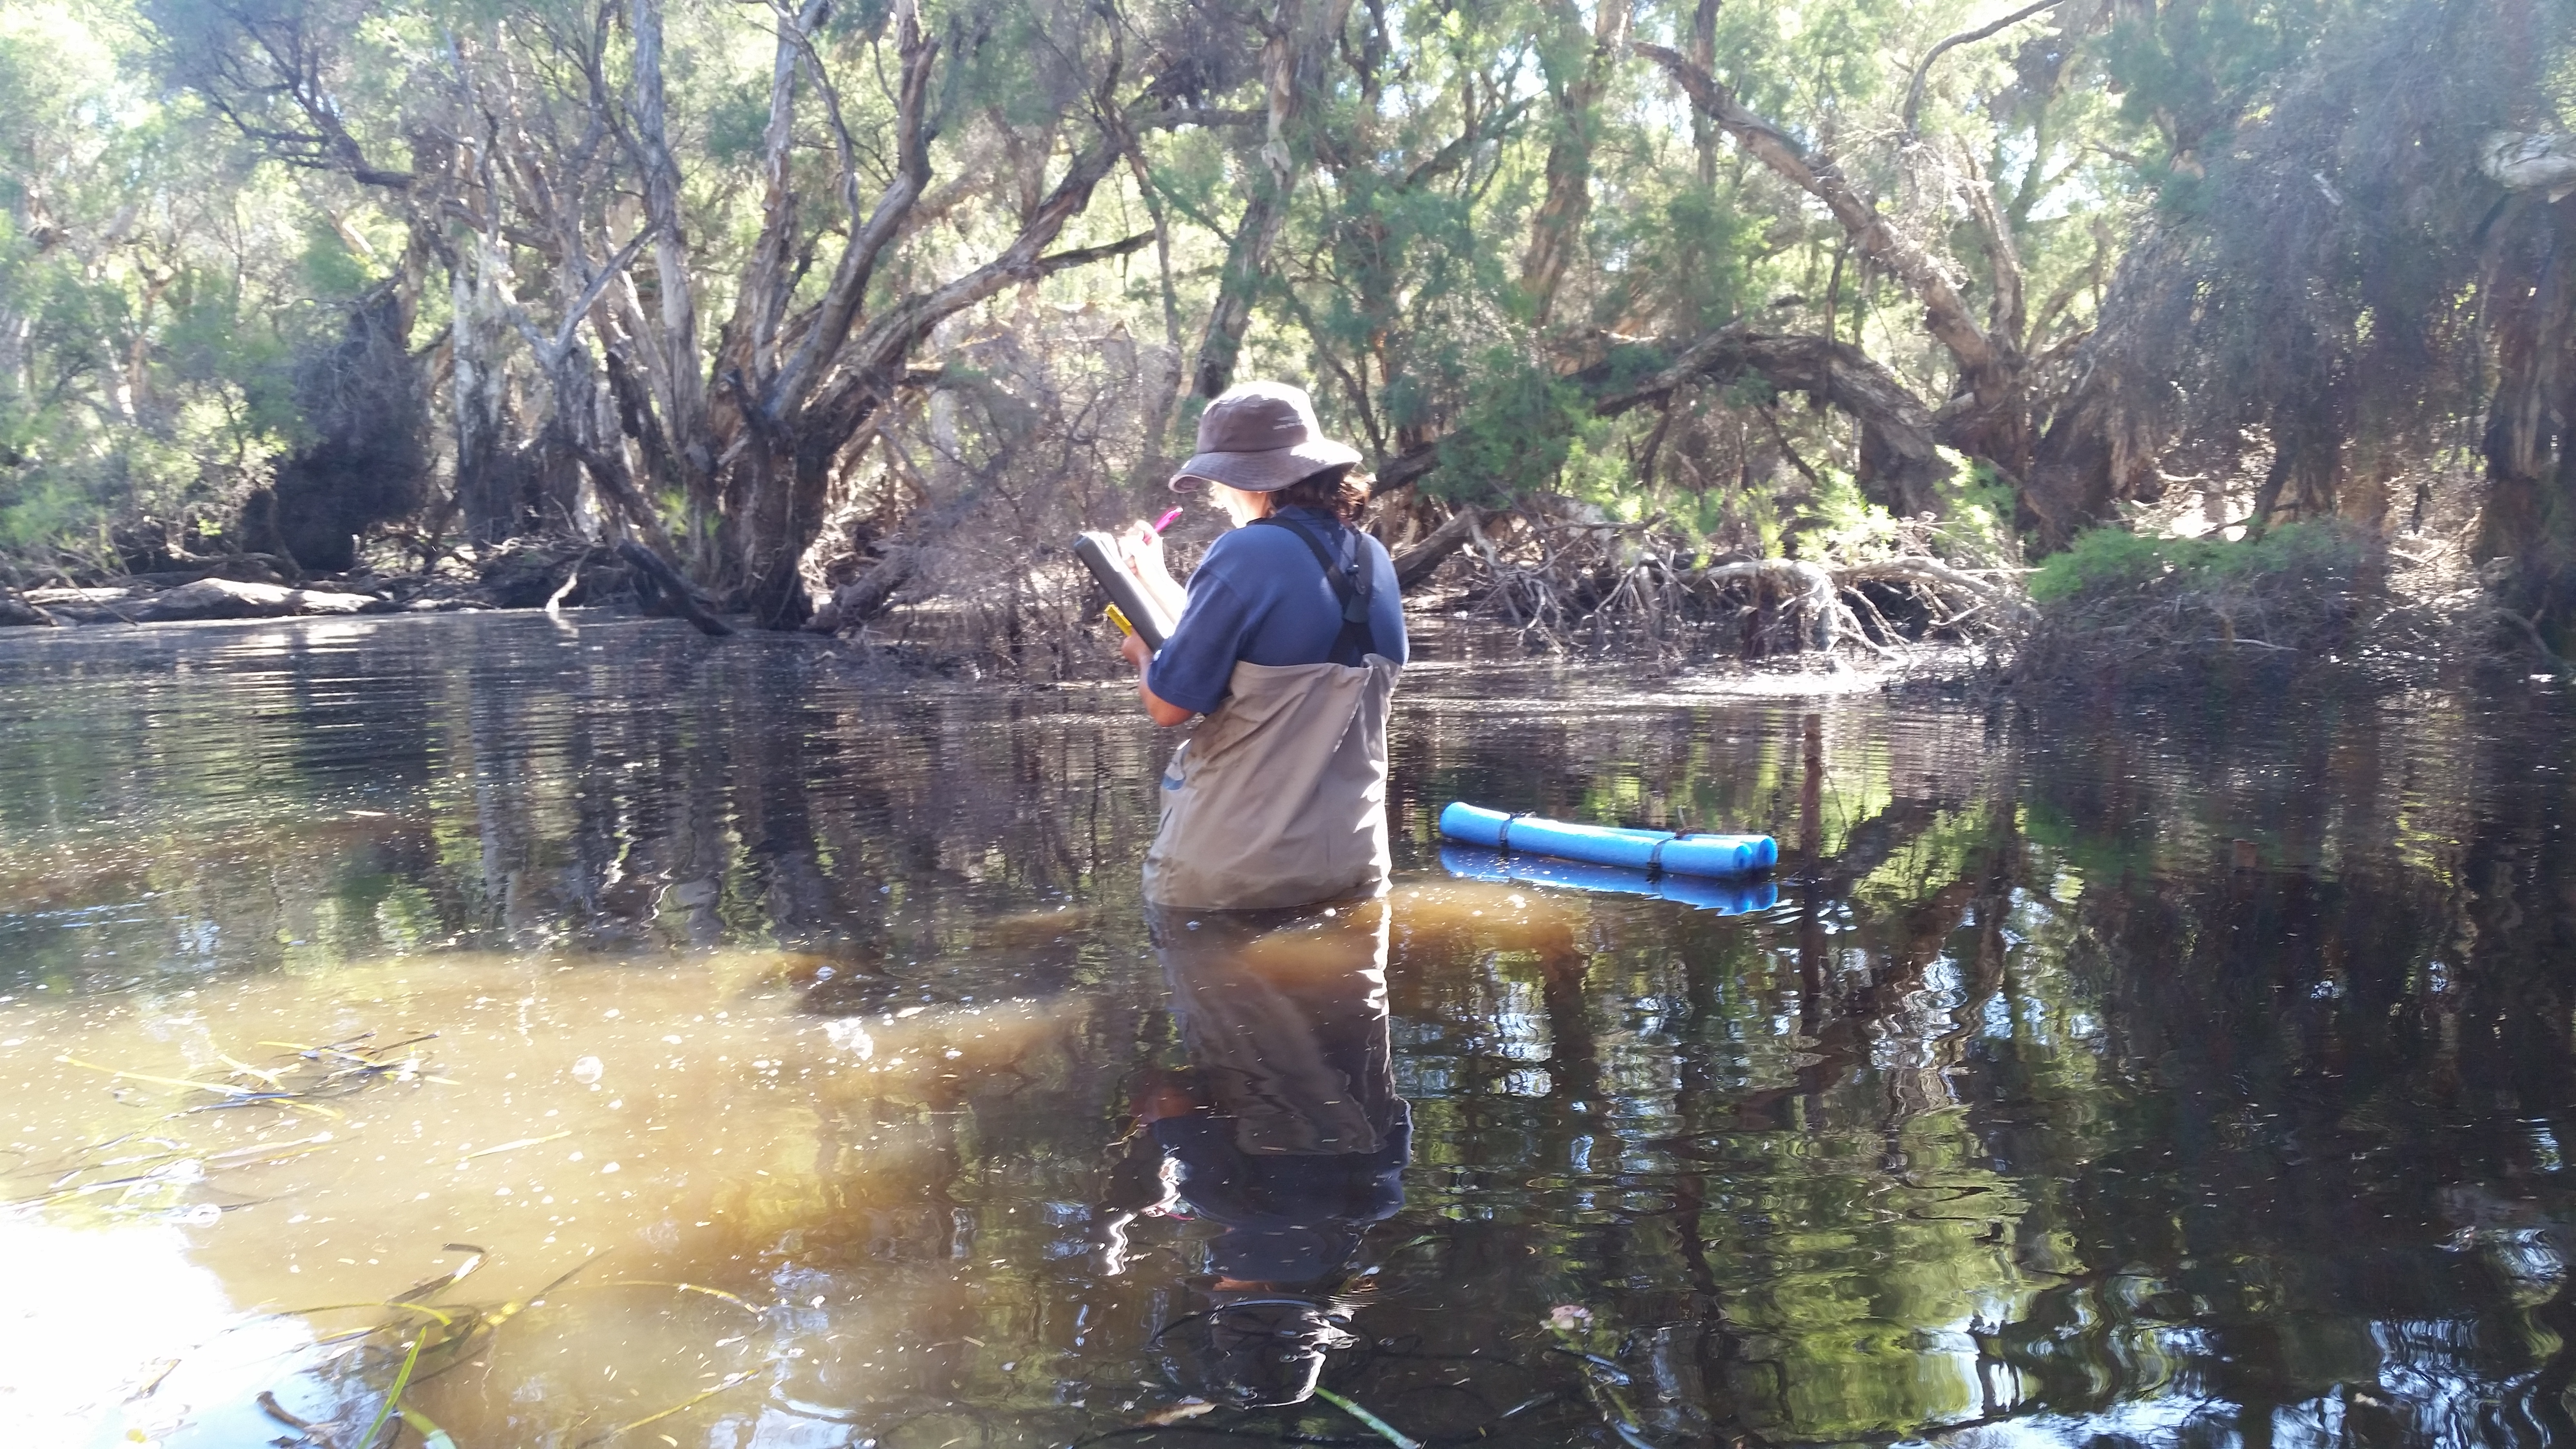 Sampling the Collie River